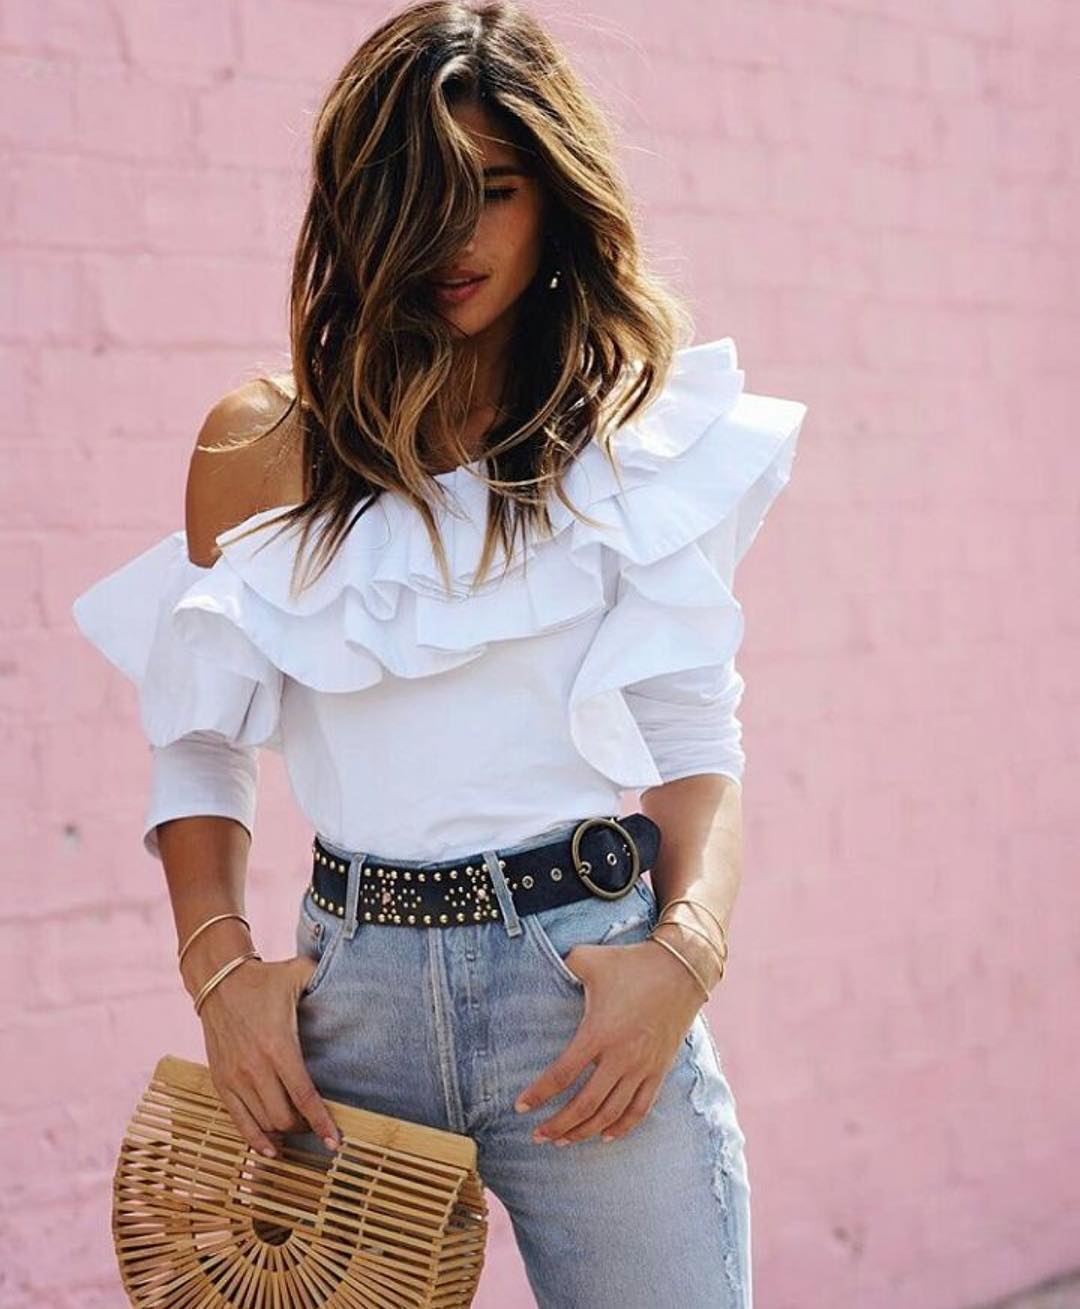 Ruffled One Shoulder Top With High Rise  Jeans For Summer 2021